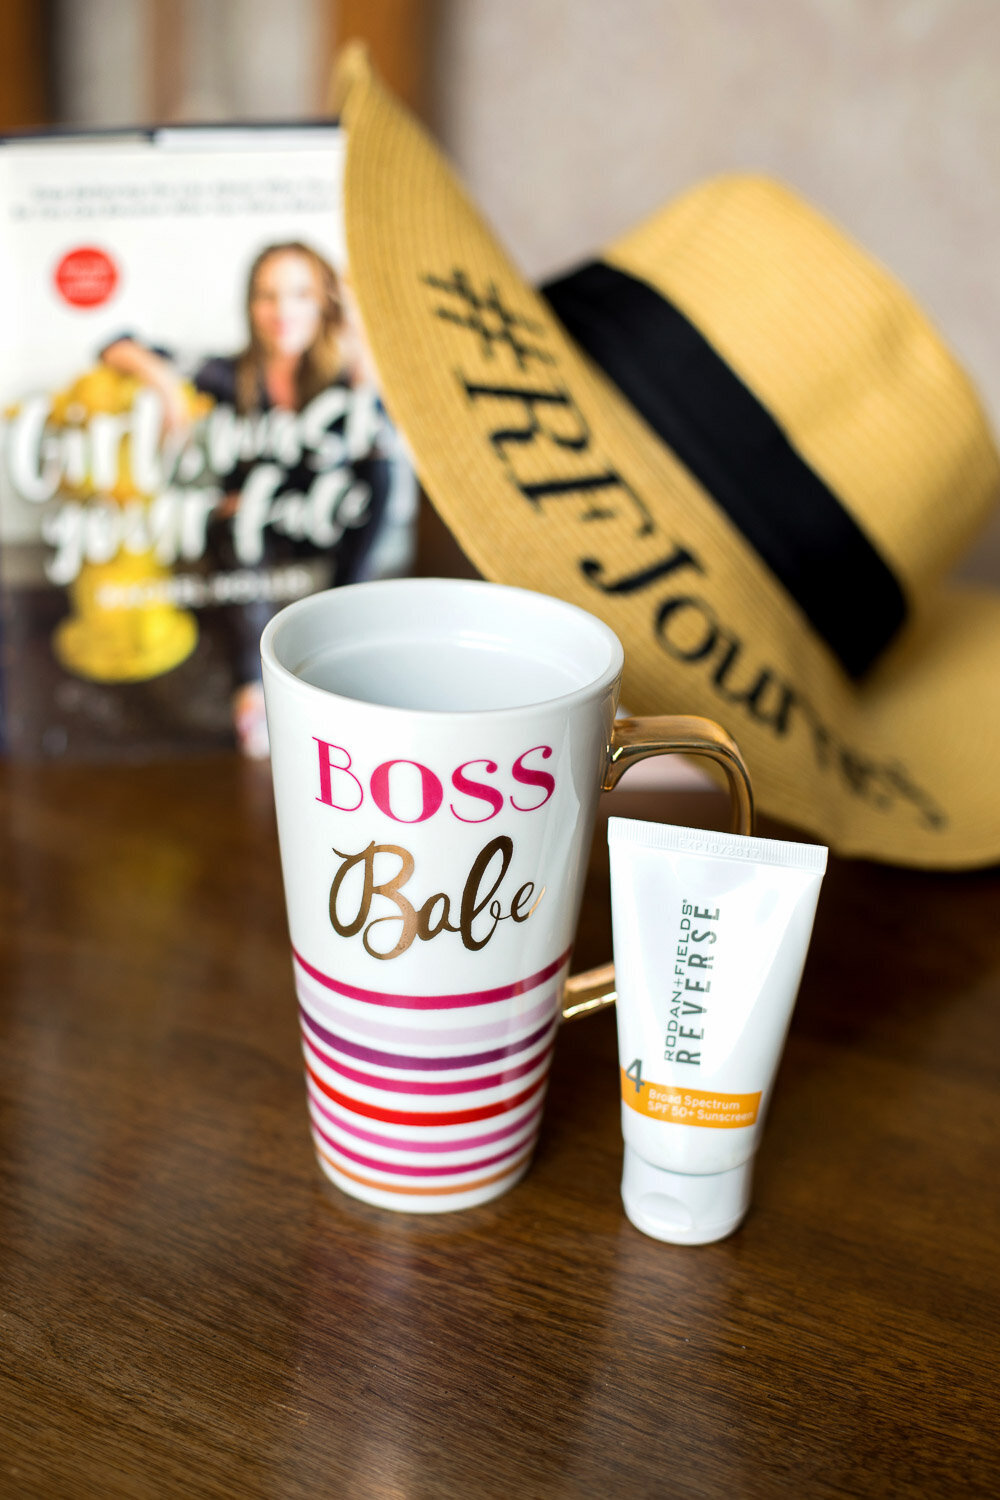 Boss babe mug with hat and book in the background